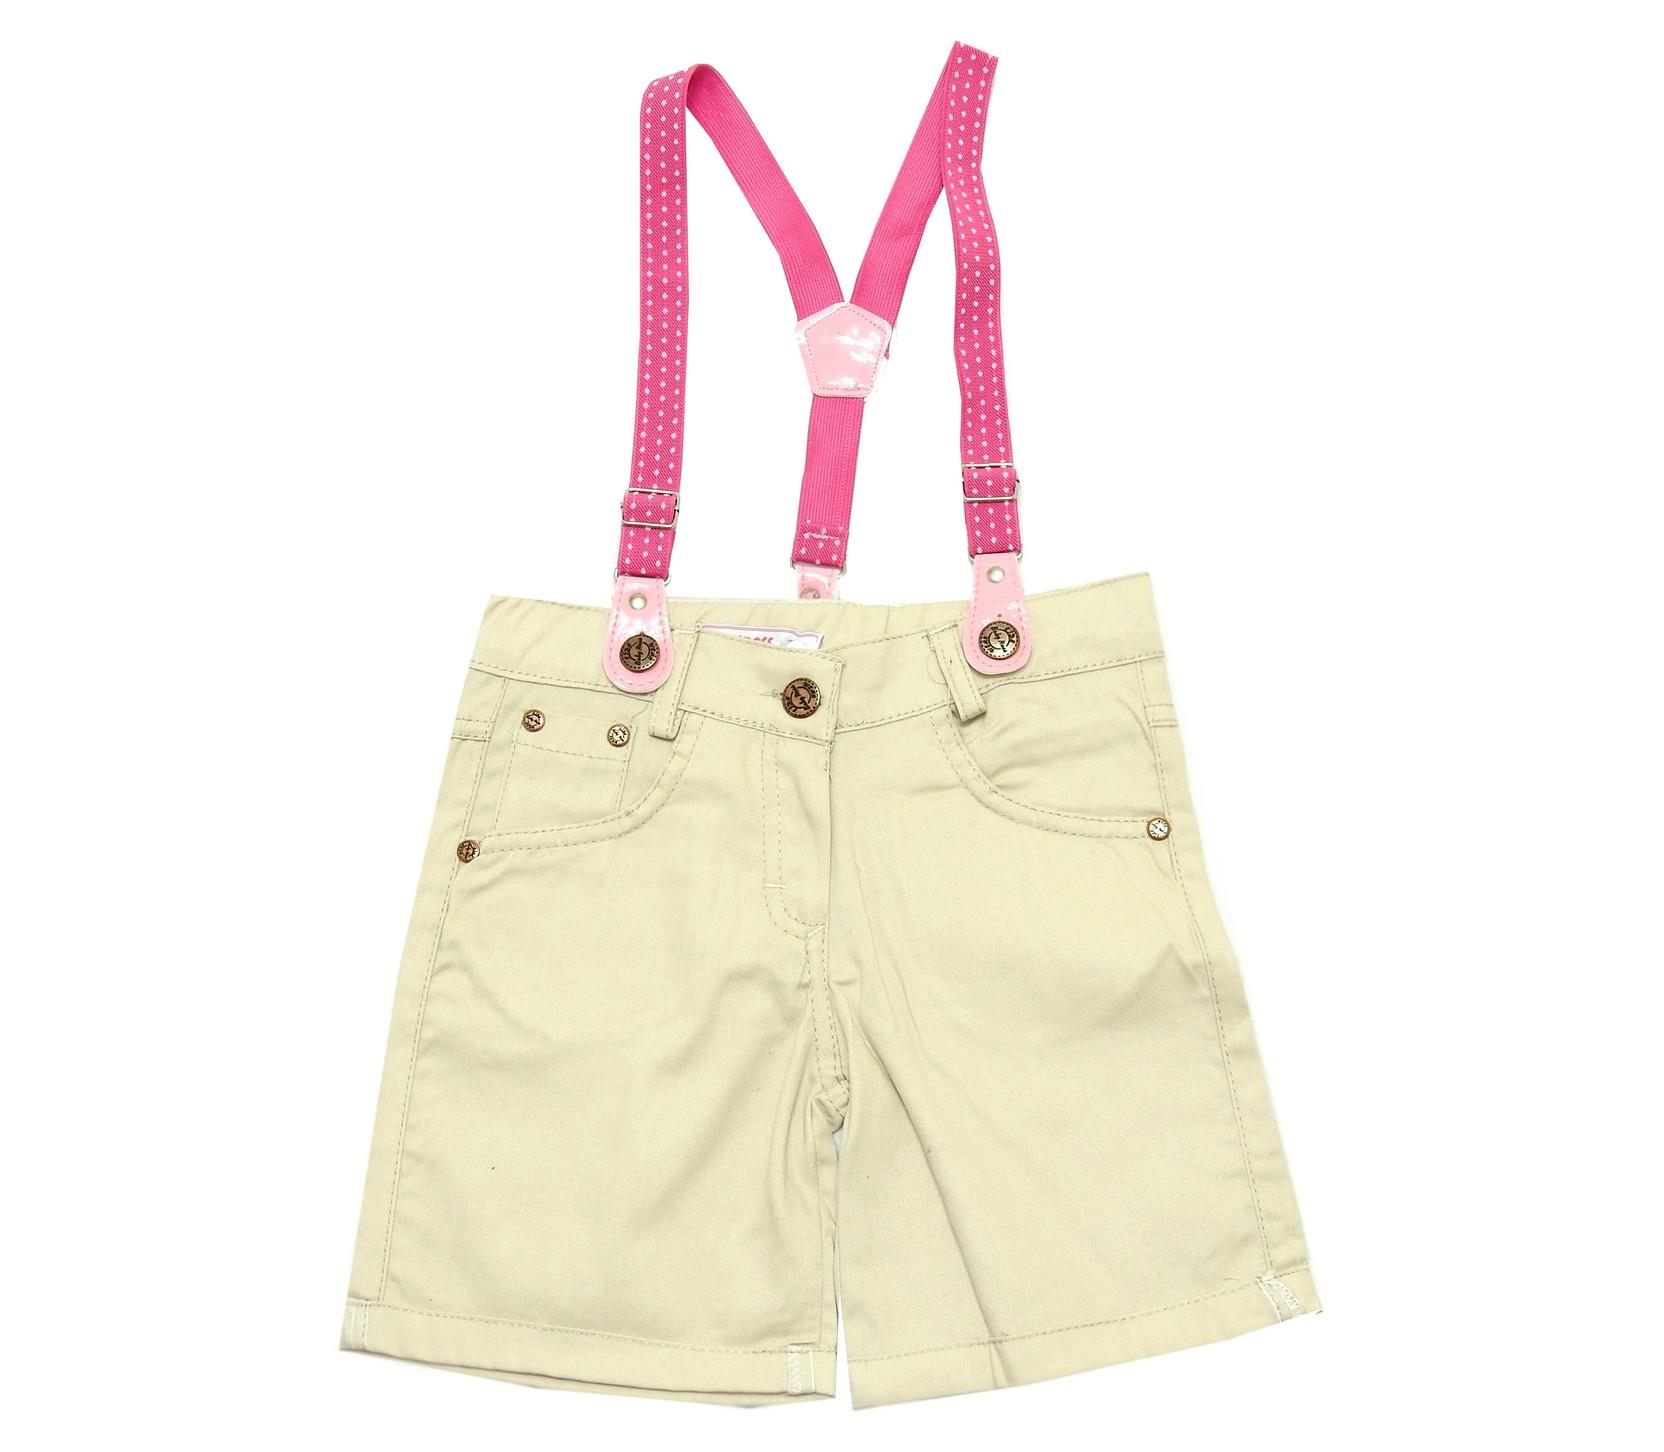 WHOLESALE SUSPENDED SHORT FOR GIRL (2-3-4-5 AGE)